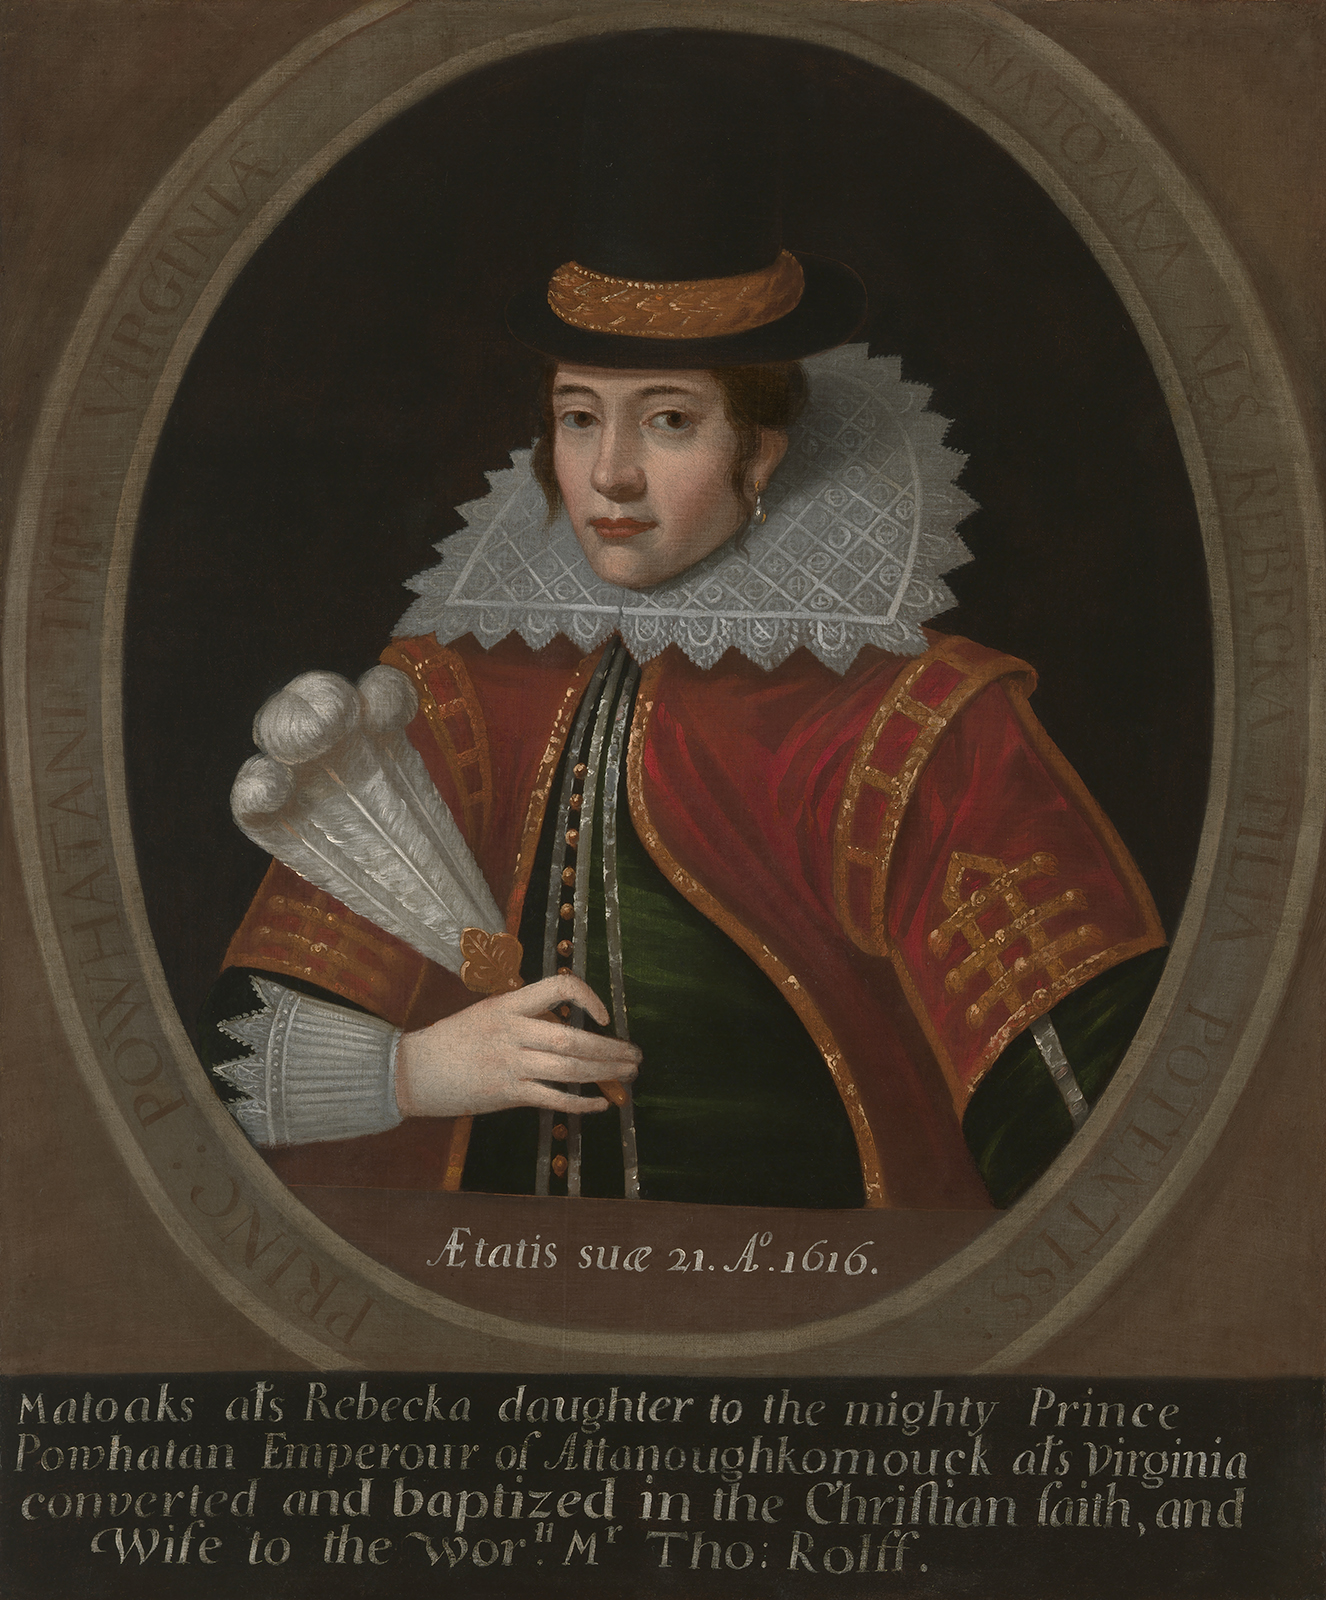 Pocahontas. Artist: Unidentified. Copy after: Simon van de Passe after 1616